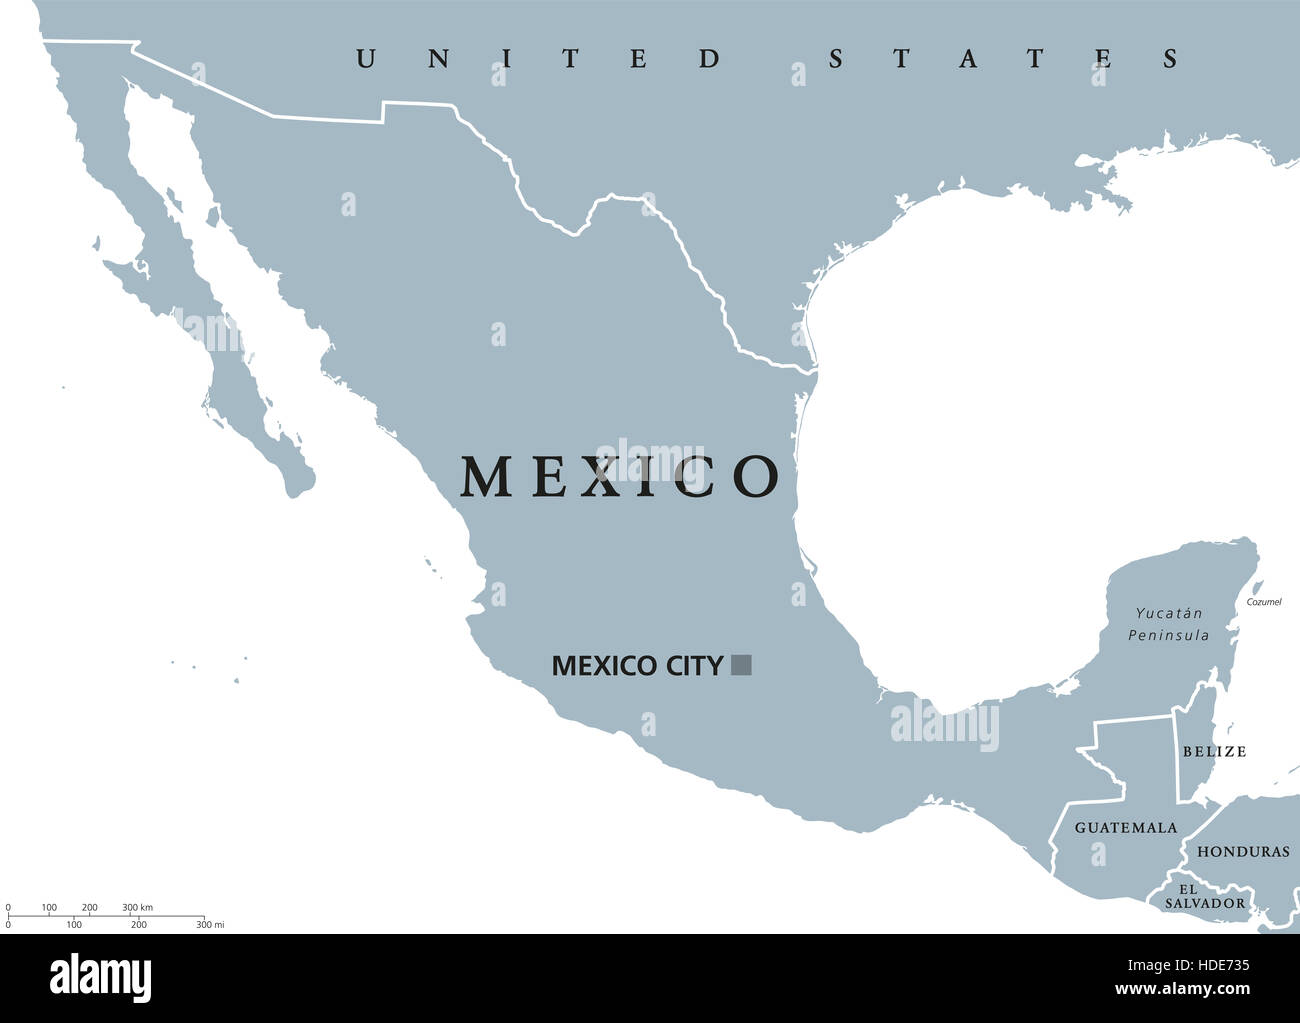 Mexico Political Map With Capital Mexico City And National Borders - Mexico political map